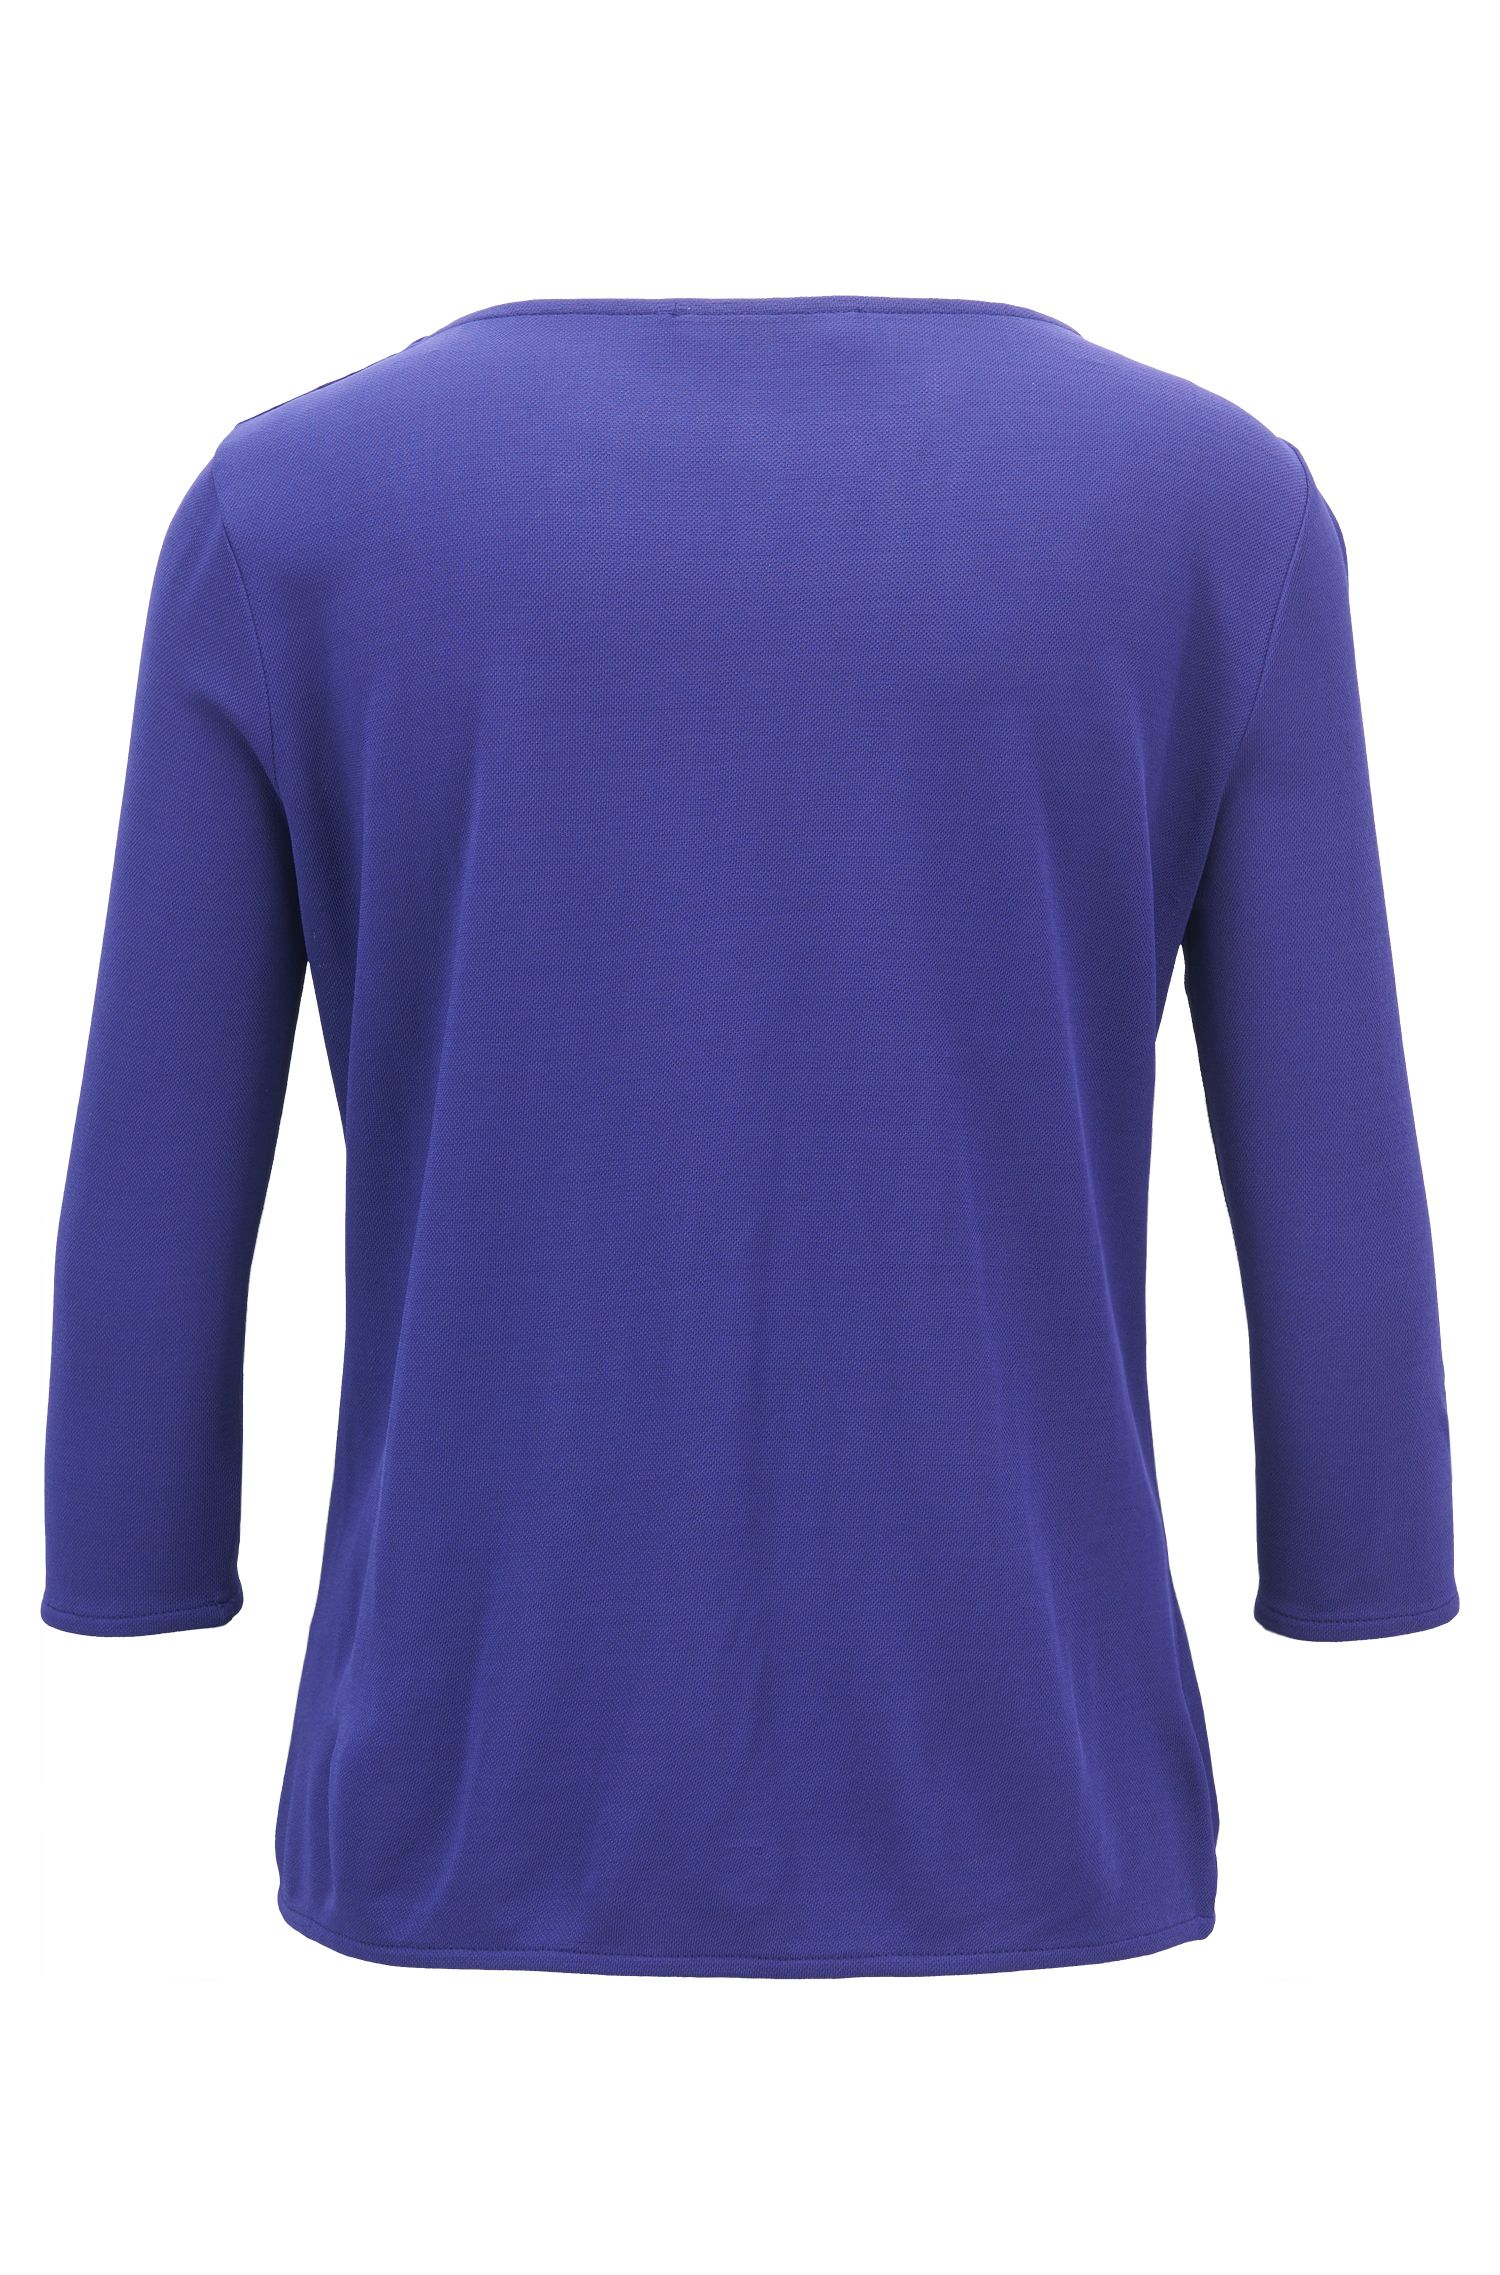 Regular-fit top in stretch crêpe jersey, Open Purple